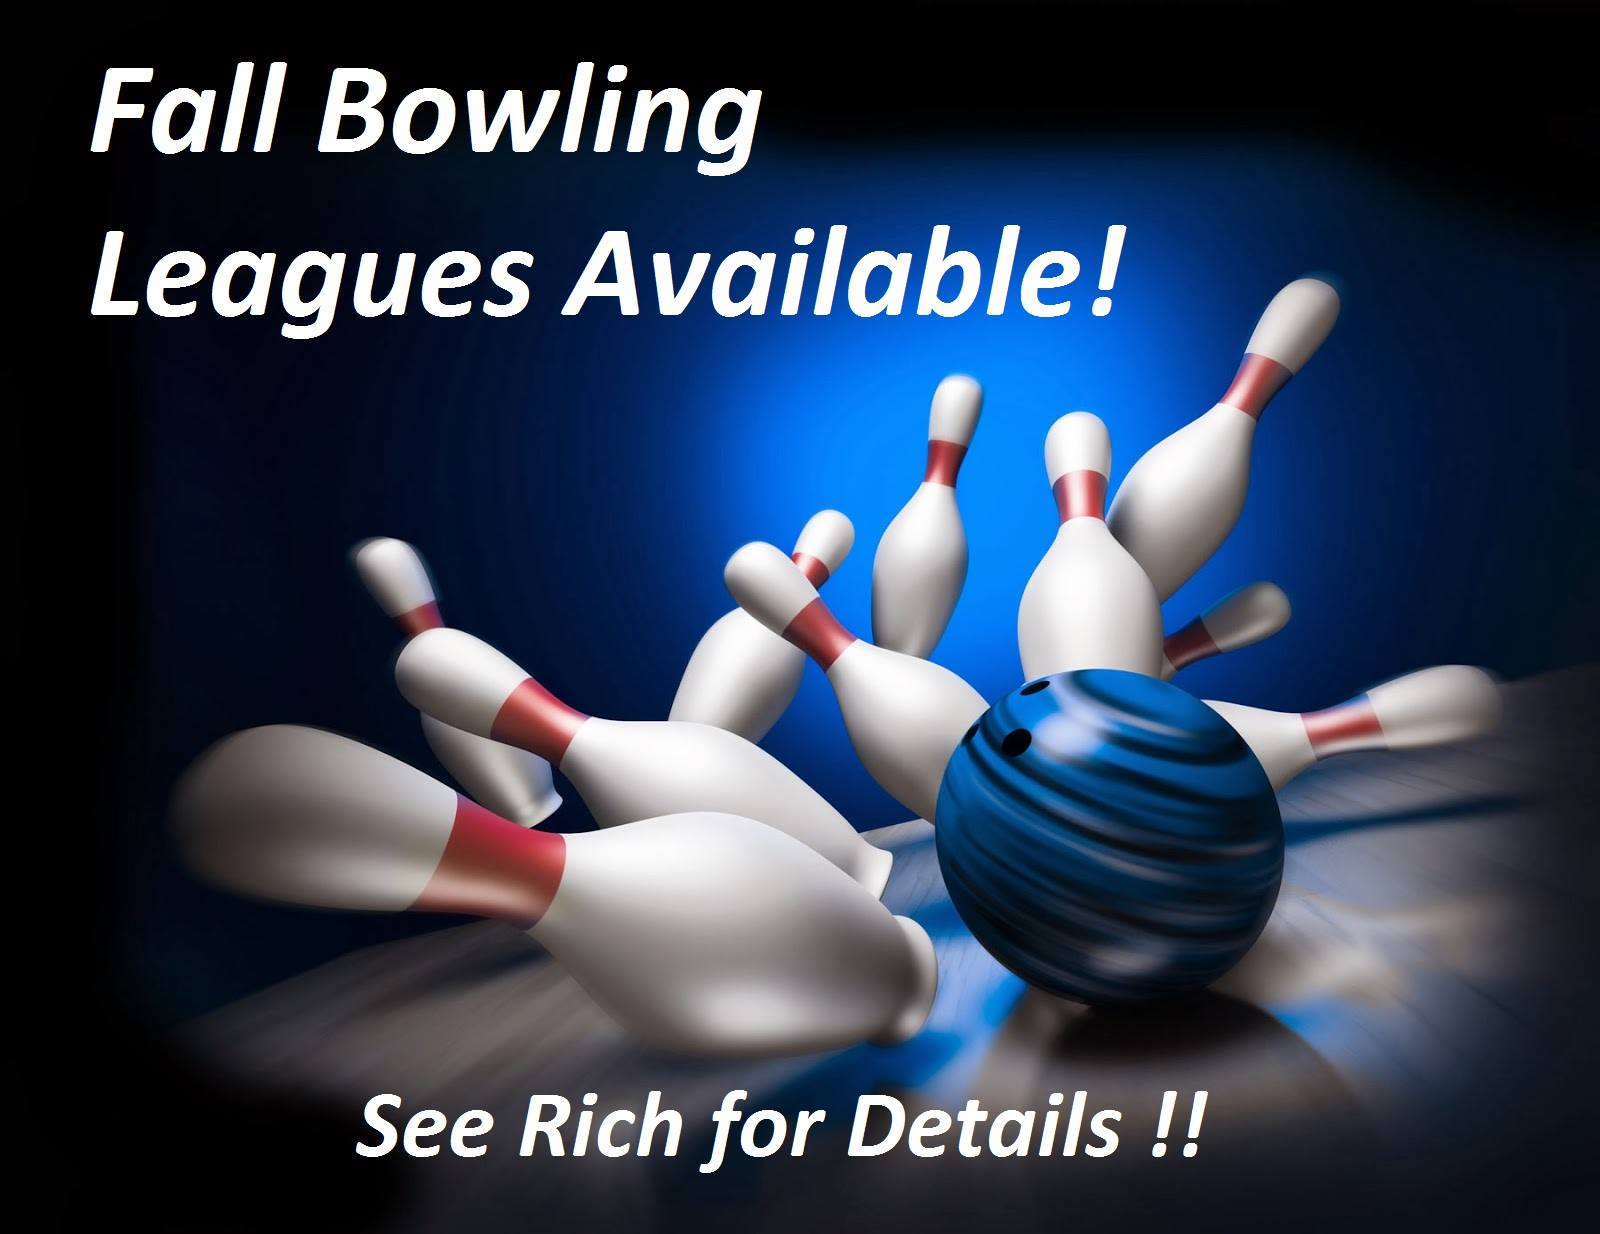 Fall Bowling Leagues